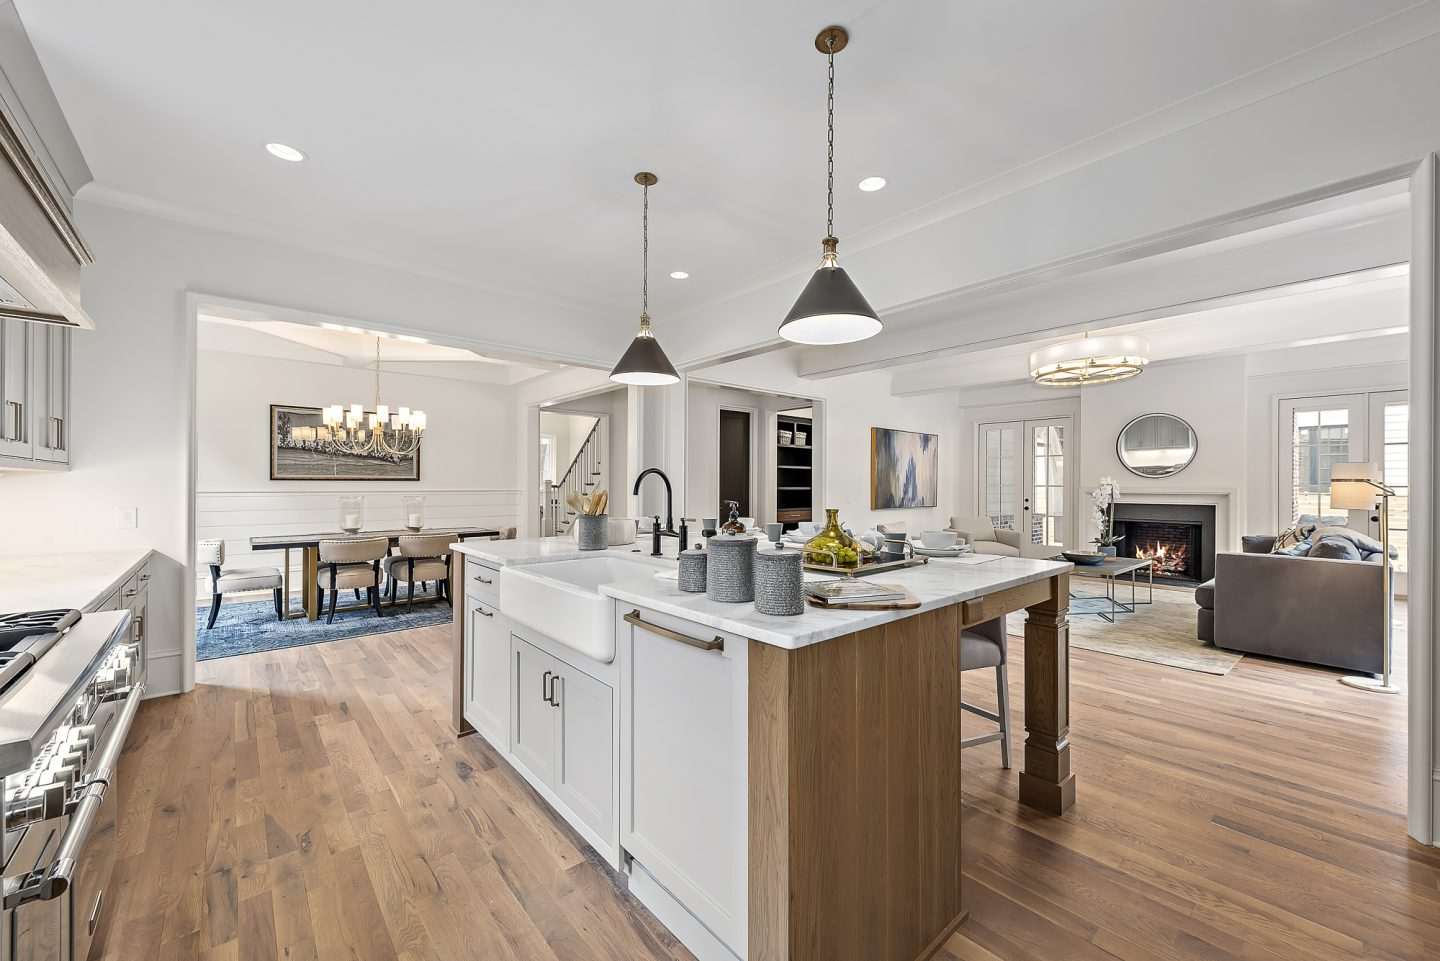 Luxury Farmhouse Kitchen - Pike Properties - Charlotte, NC - Schwaiger Realty Group